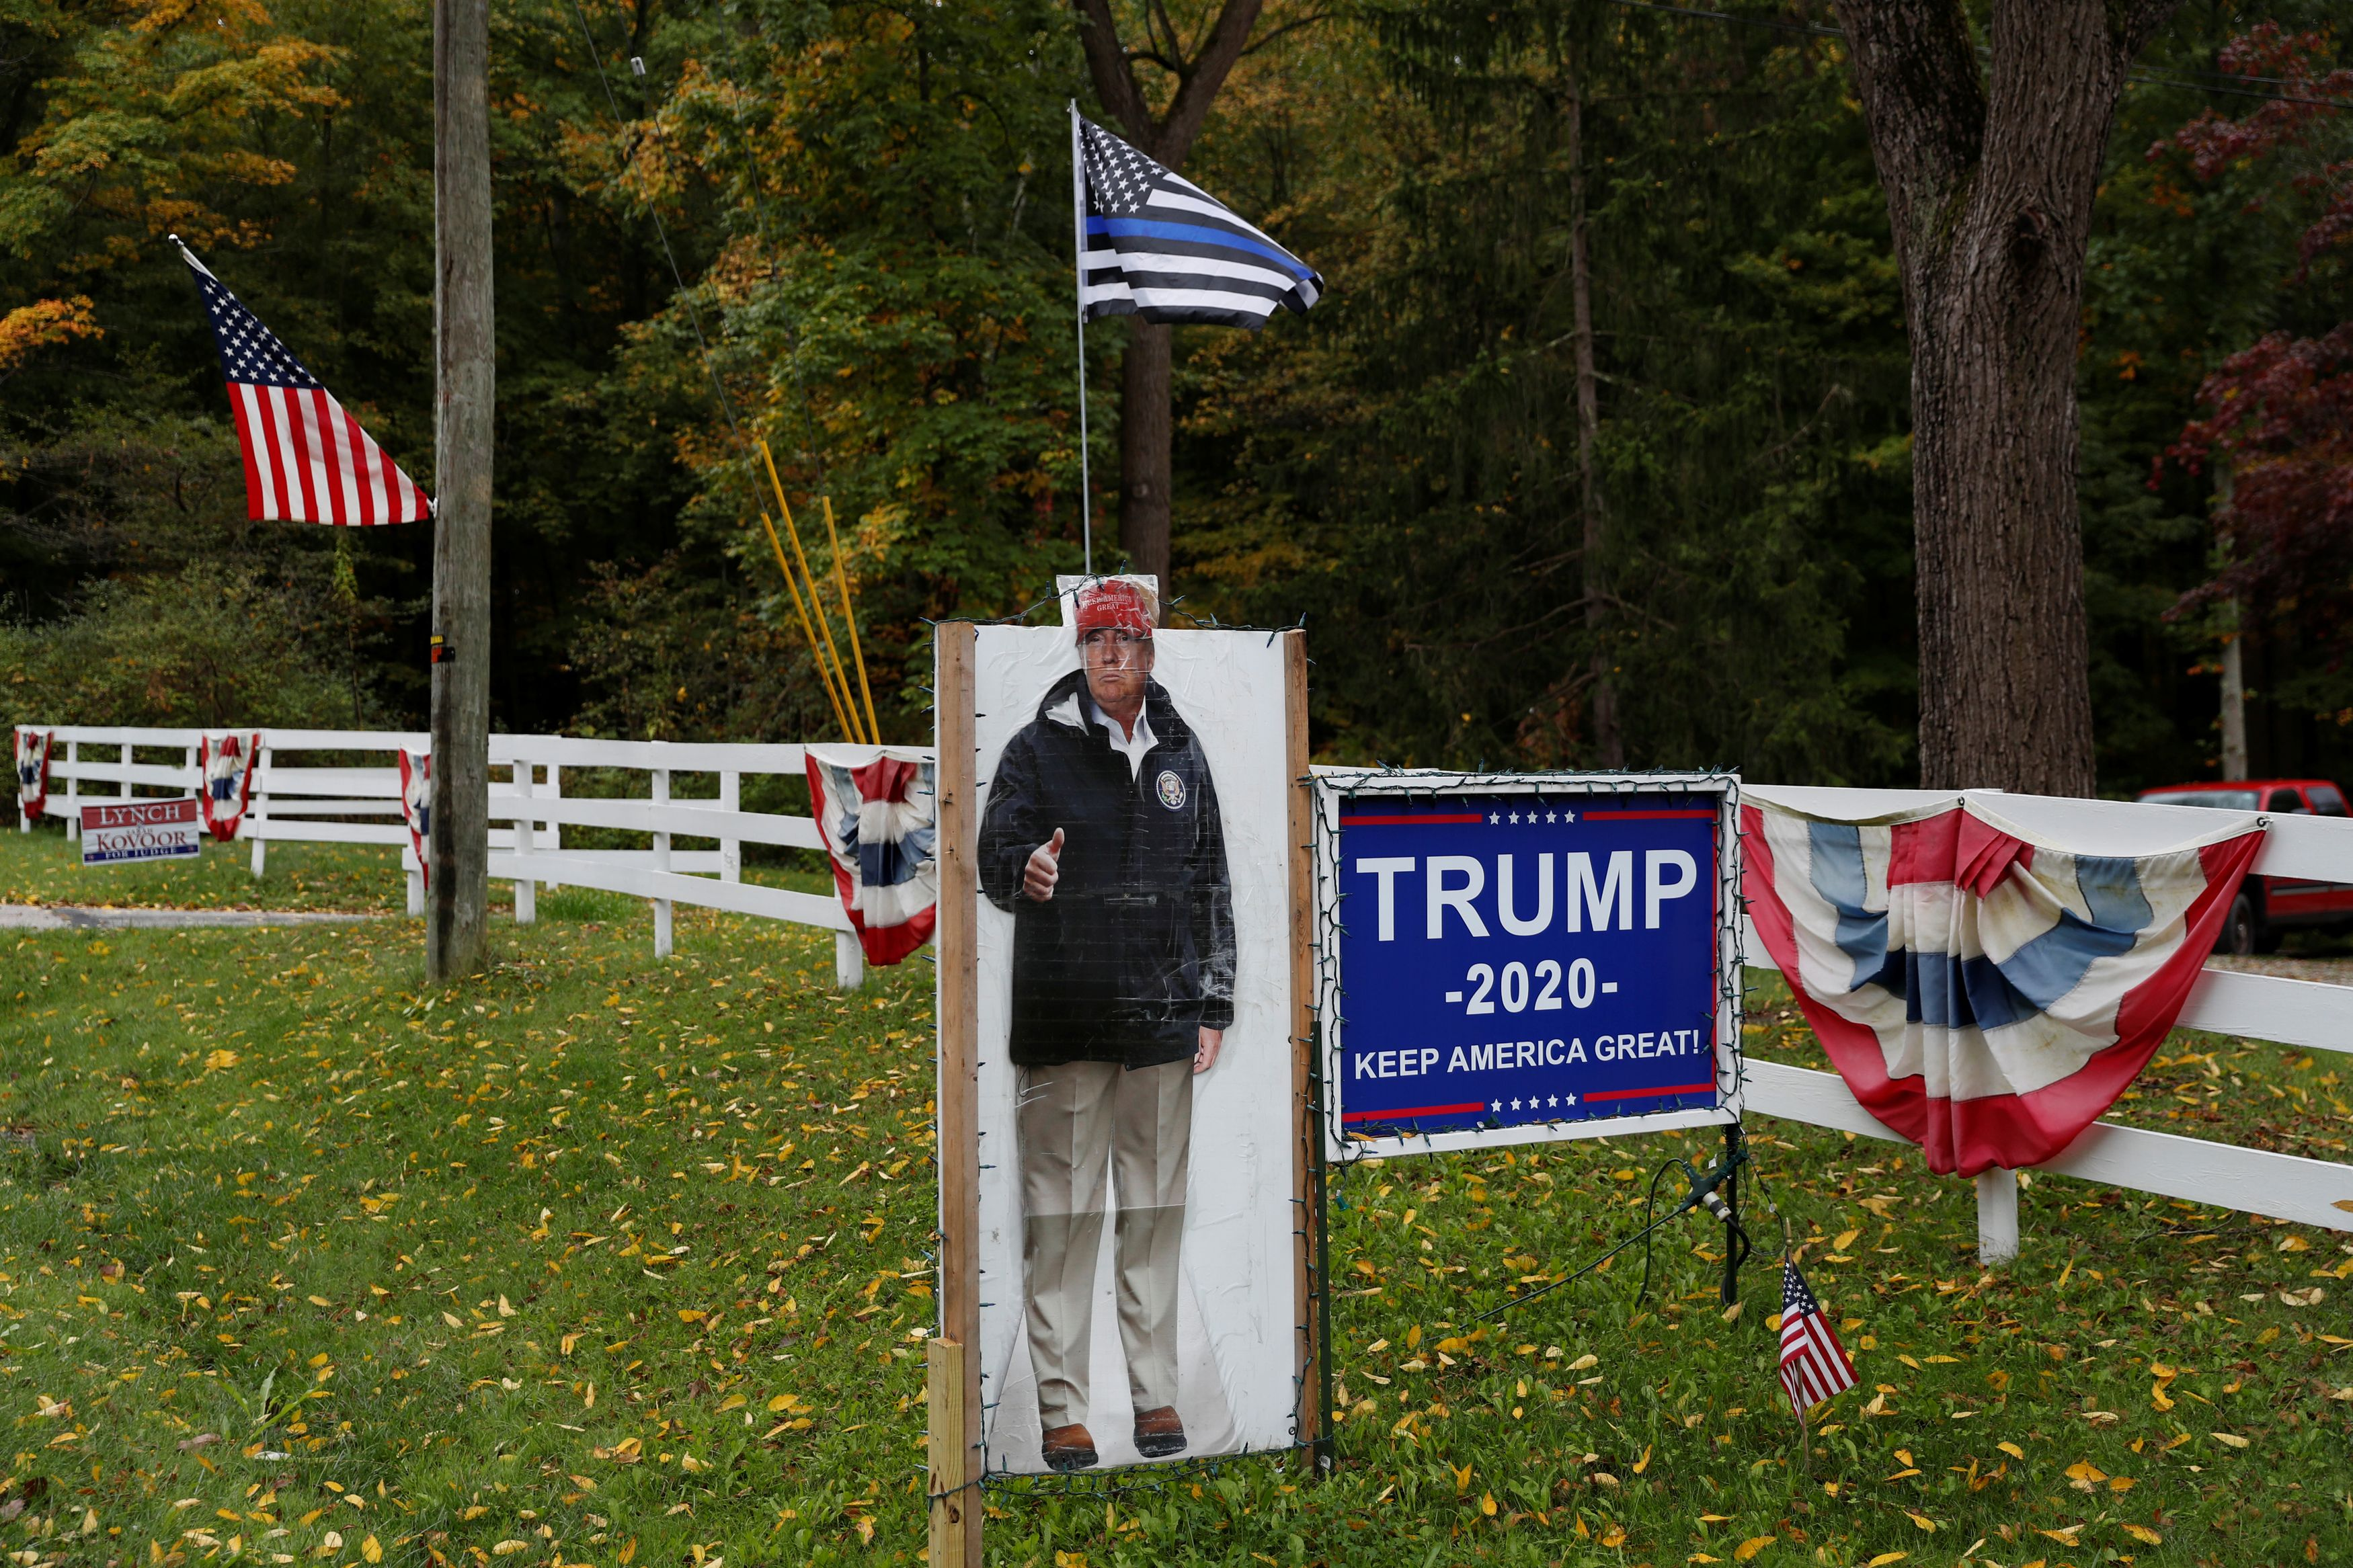 Trump No More Bullshit 2020 Vote for Trump USA President Elections Yard Sign